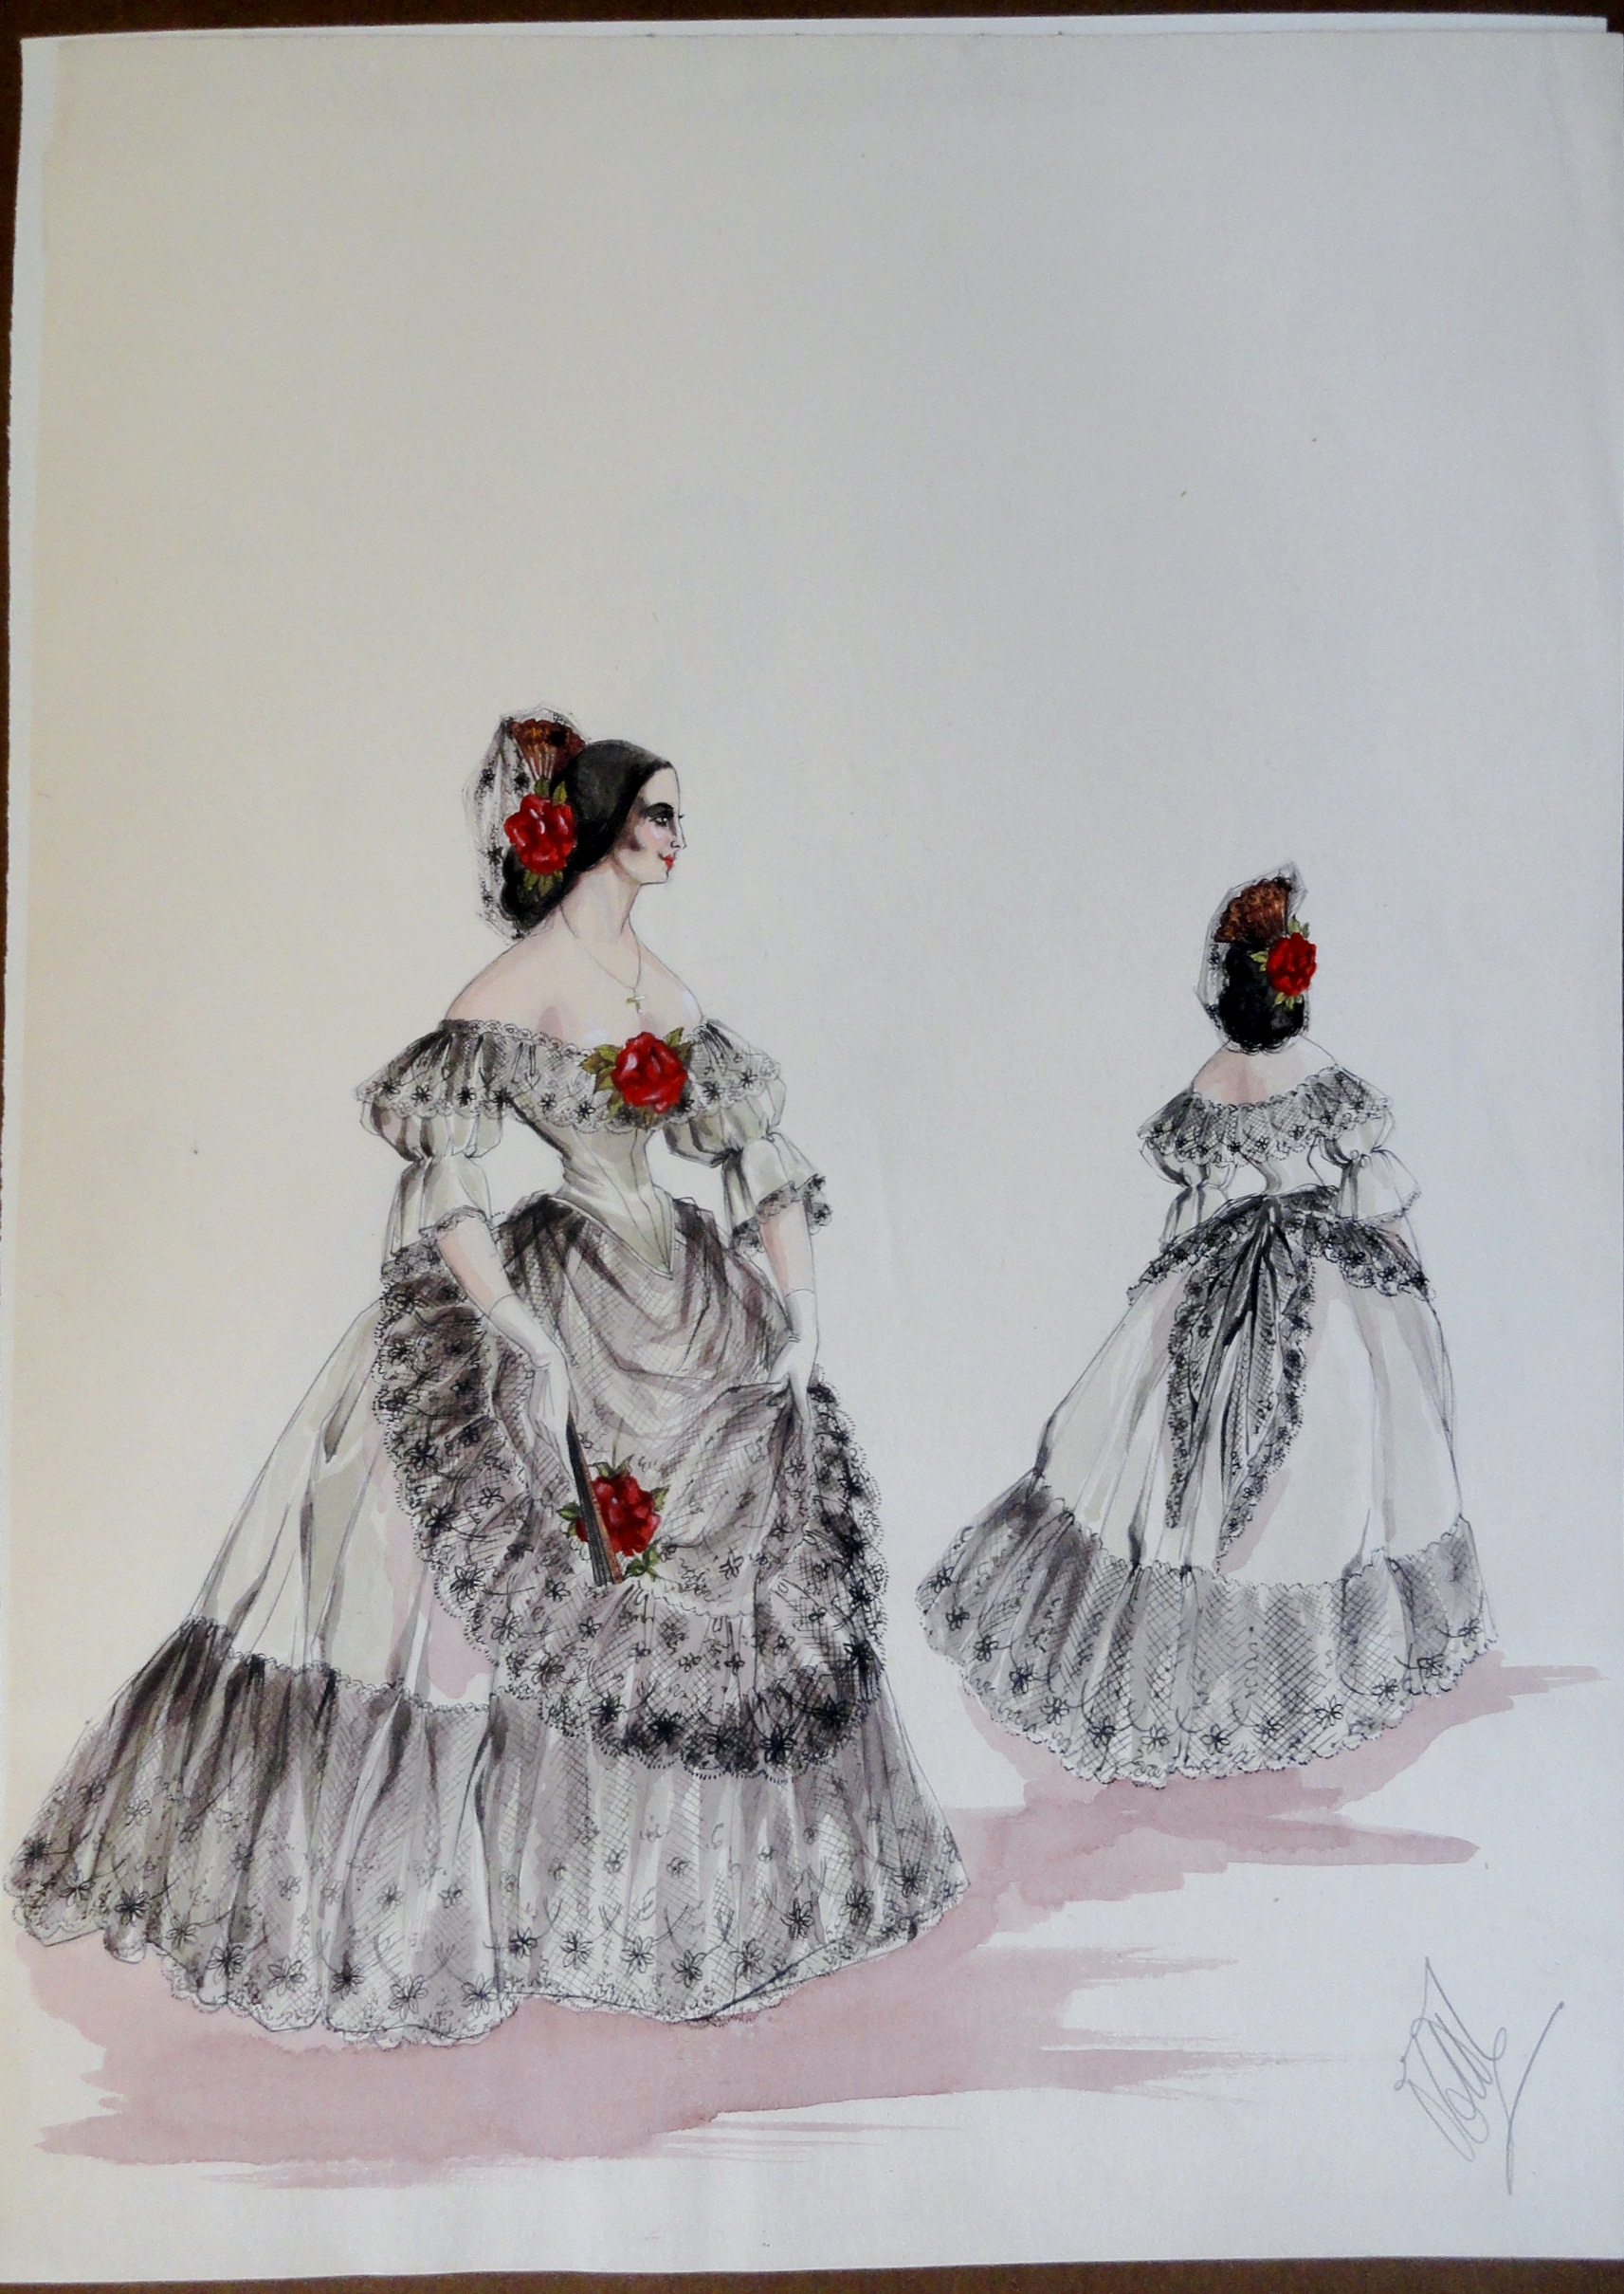 Rachel Felix white Spanish gown with red flowers. Pen and Ink and Watercolor painting on paper.  From the Rachel Portfolio by Owen Hyde Clark. $300.00.